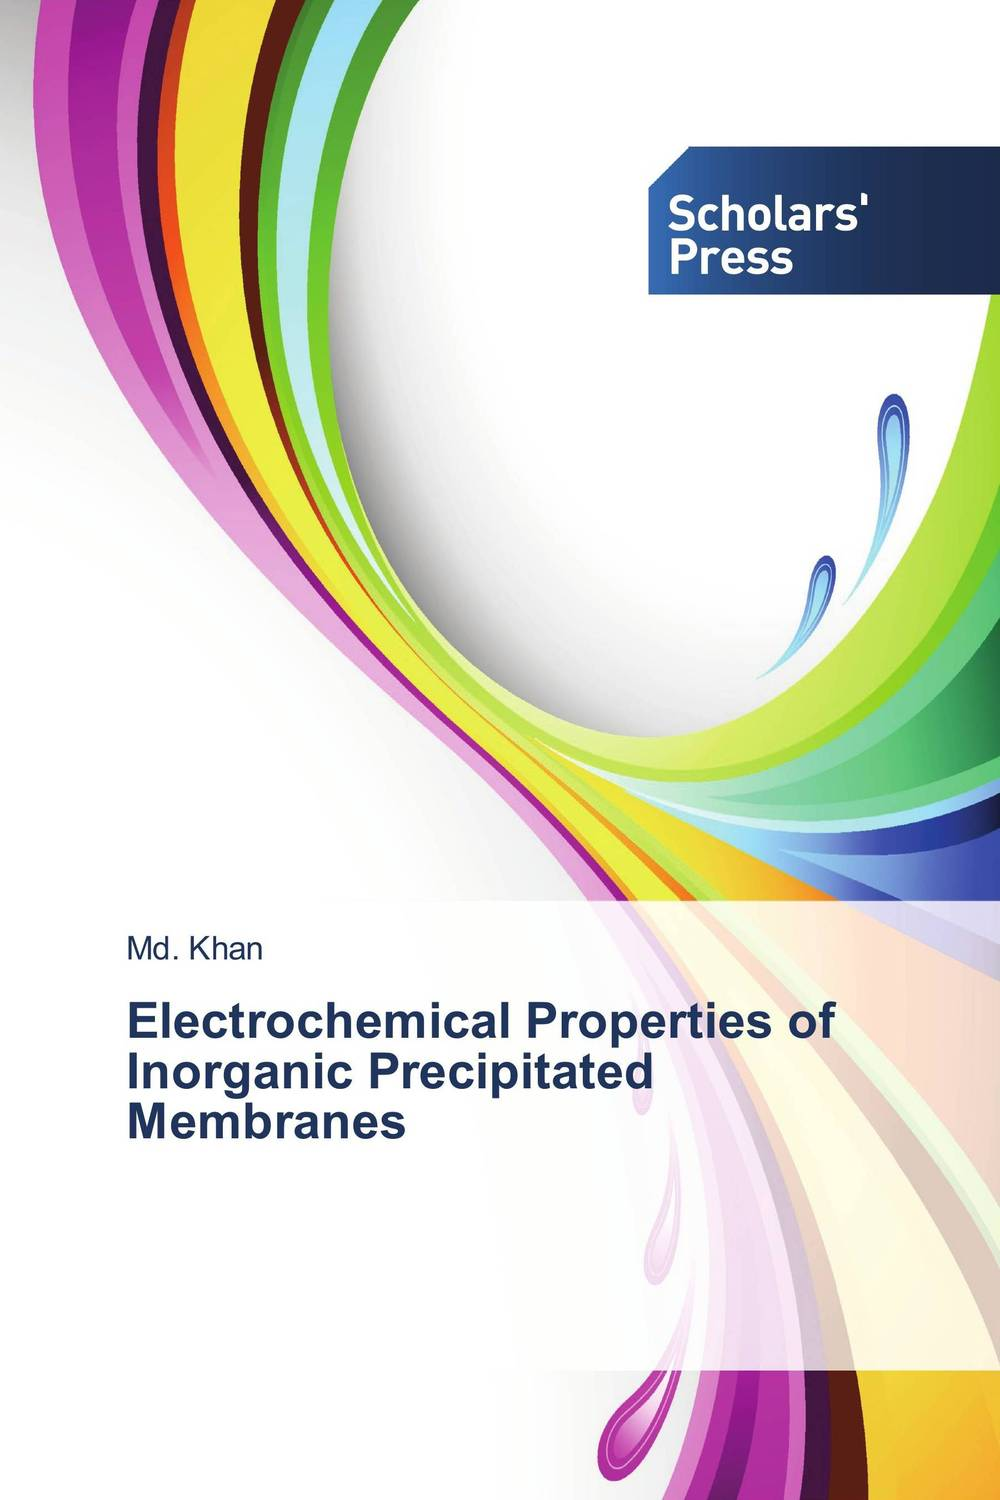 Electrochemical Properties of Inorganic Precipitated Membranes андрей курков рождественский сюрприз